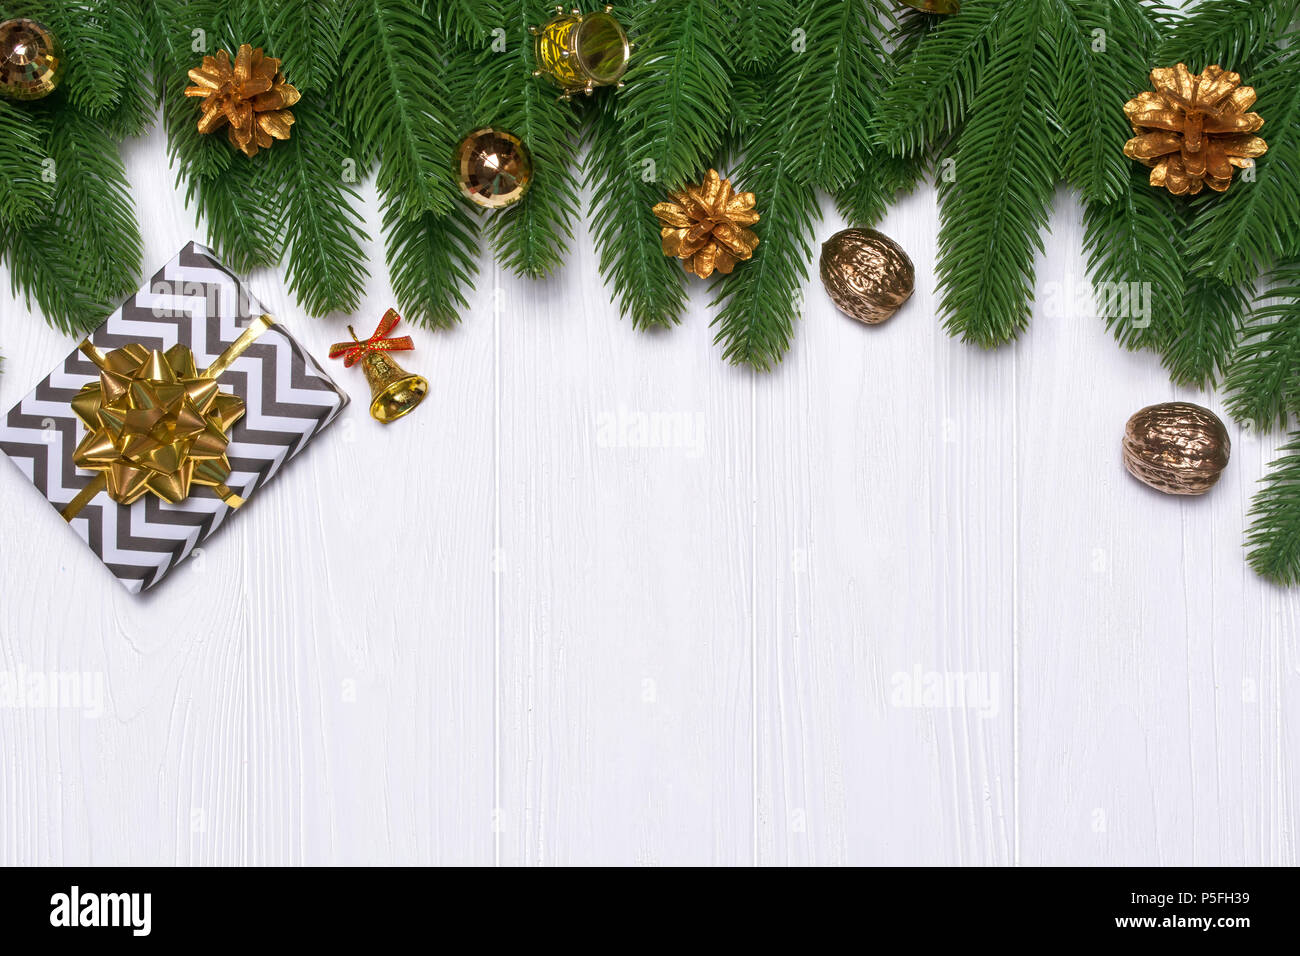 Christmas Drum Decor.New Year S Border On A White Wooden Background Golden Cones